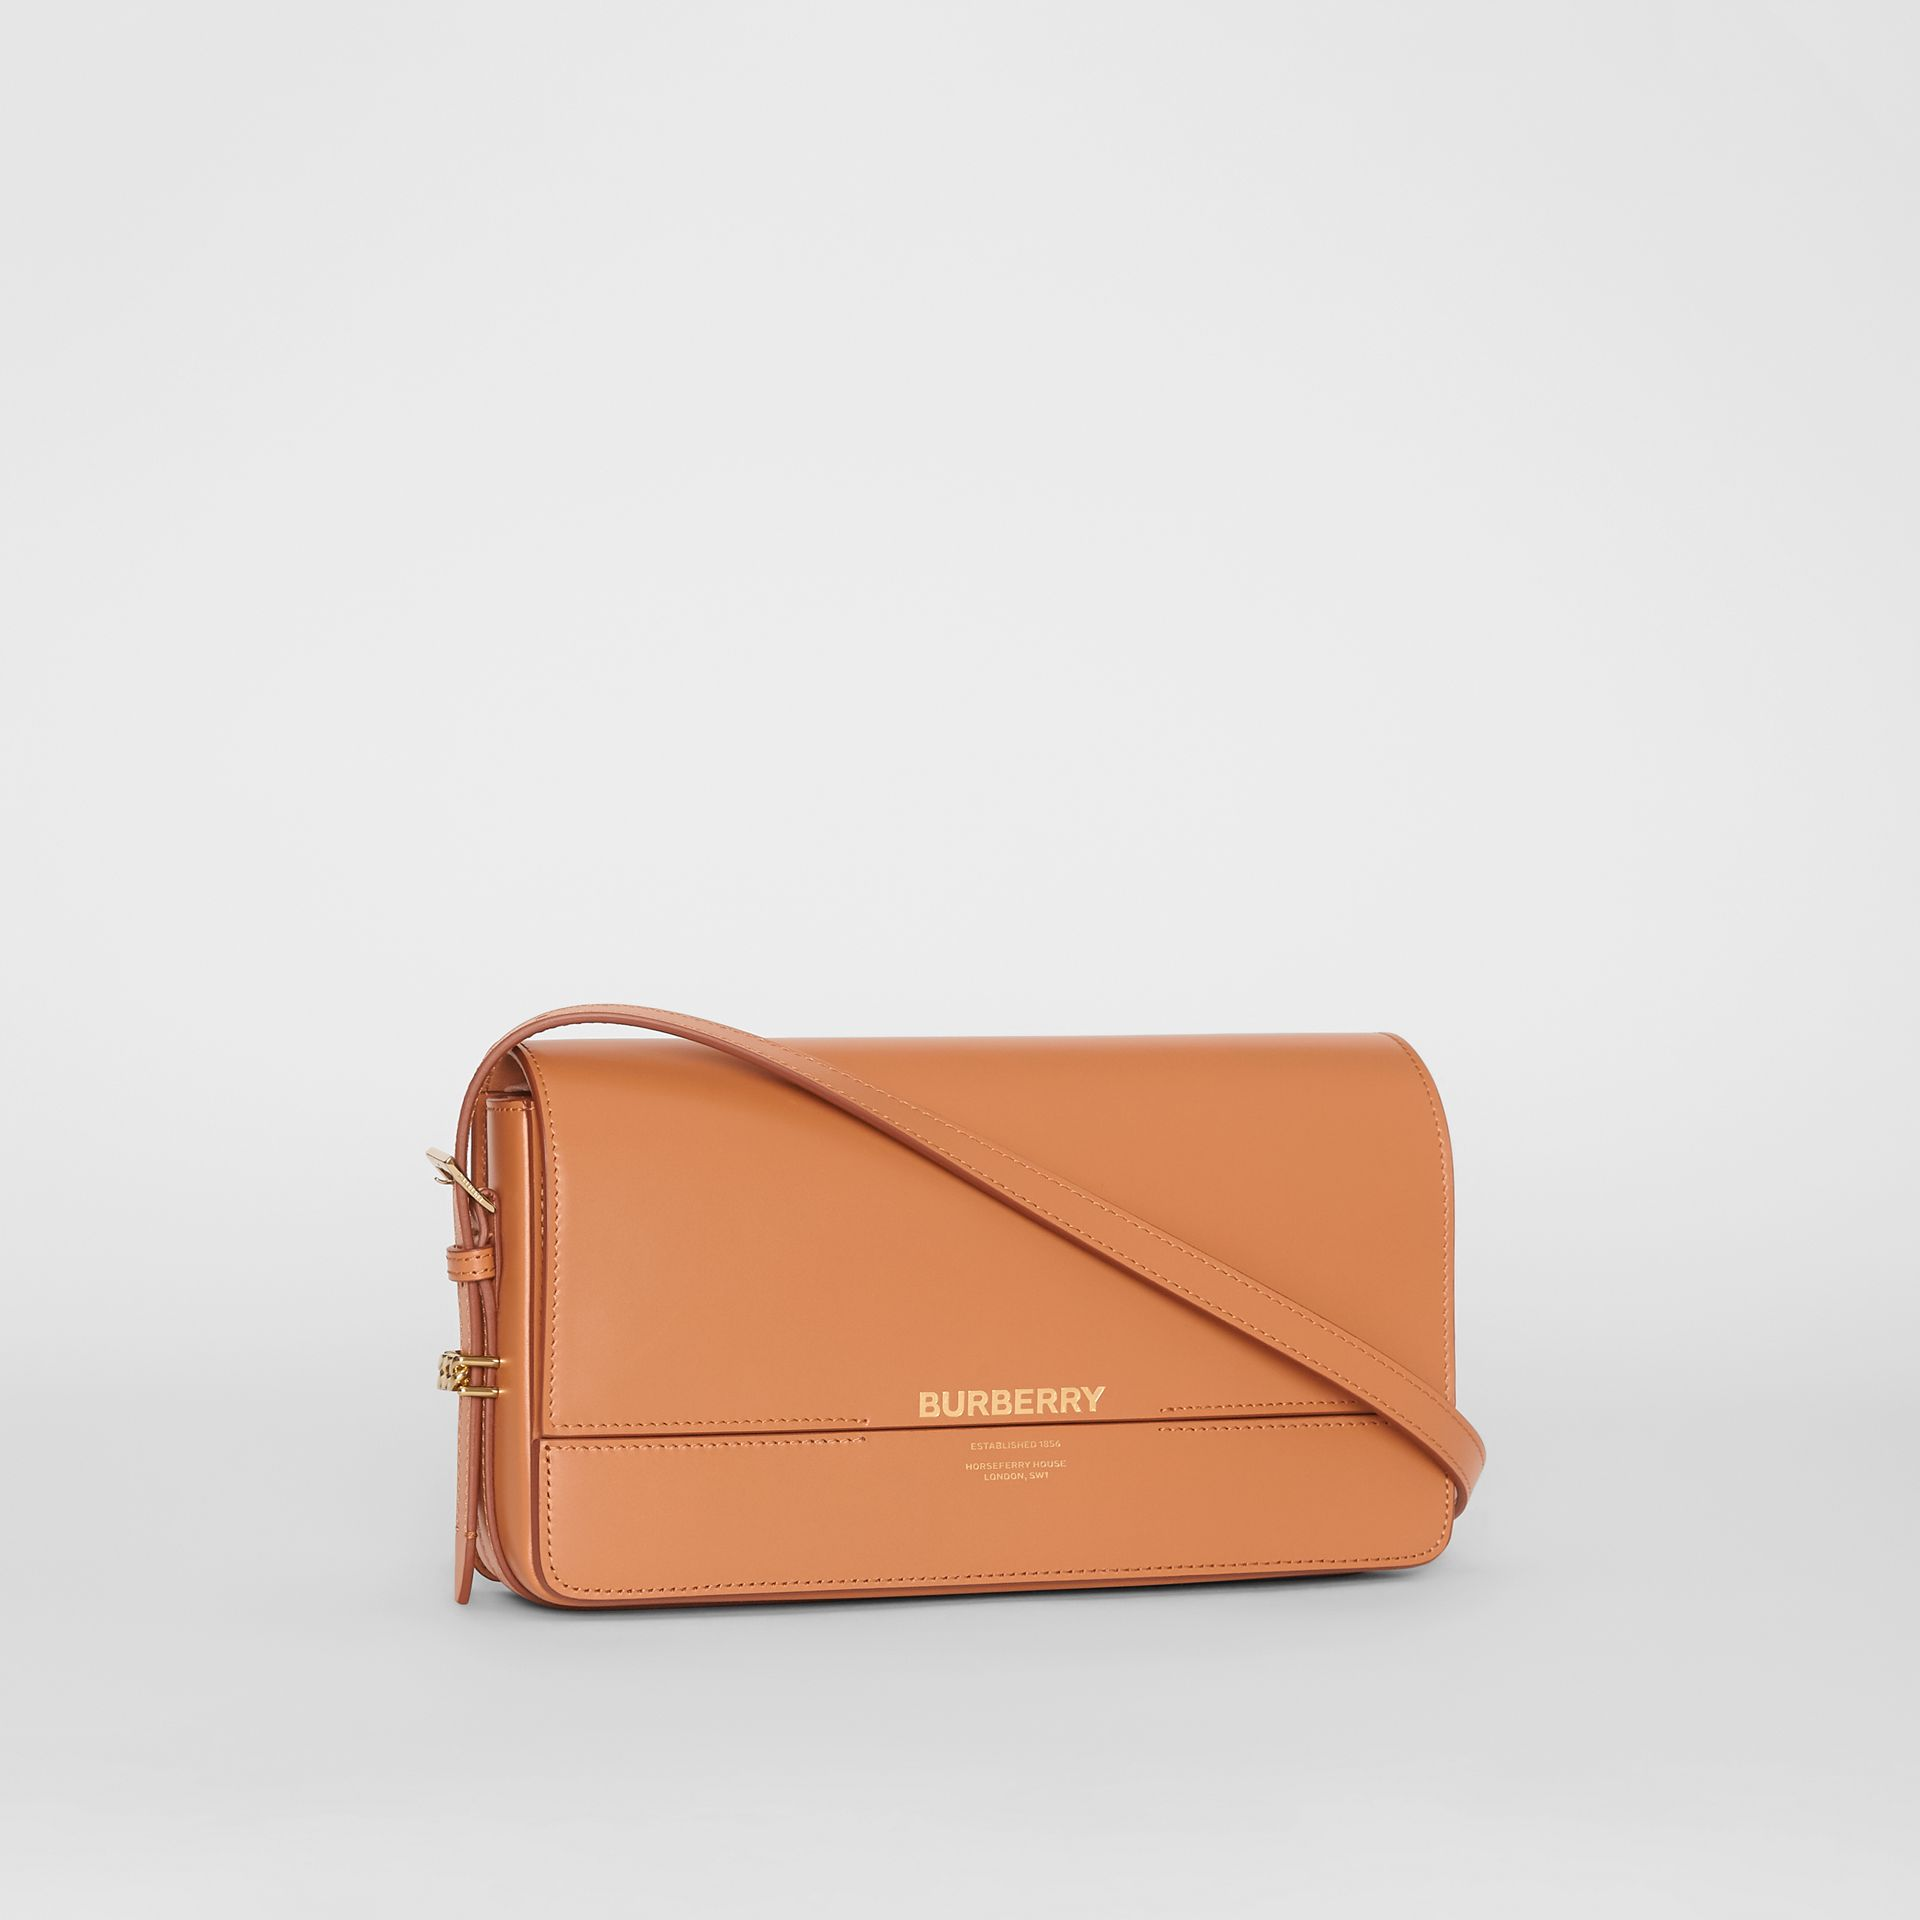 Mini sac Grace en cuir (Noix De Muscade) - Femme | Burberry Canada - photo de la galerie 6